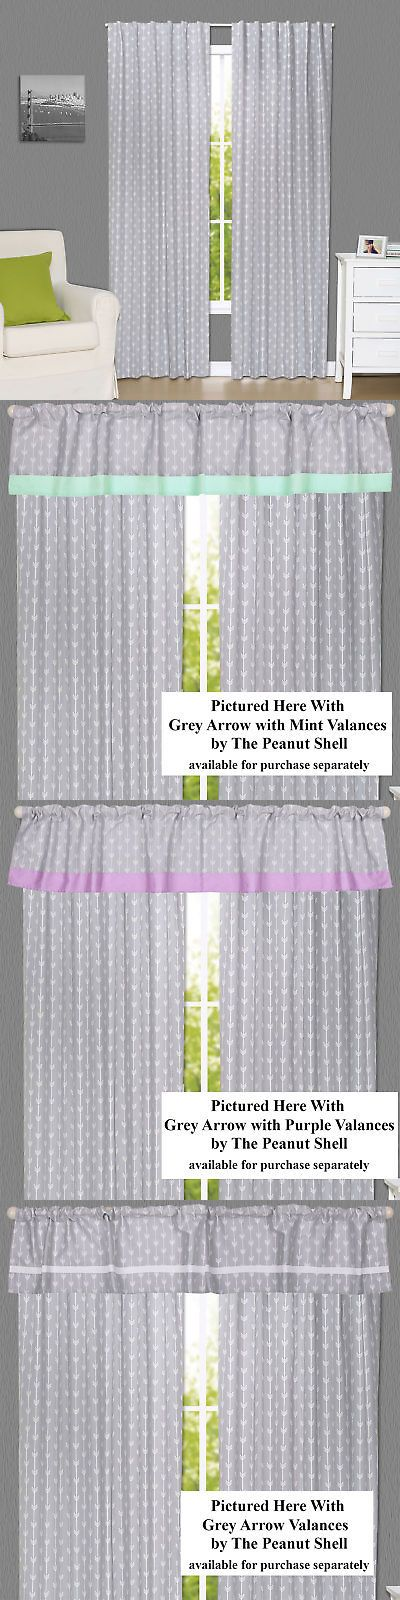 Nursery D Cor 66697 Grey Arrow Print Blackout Window Drapery Panels Two 84 X 42 Inch It Now Only 95 On Eba